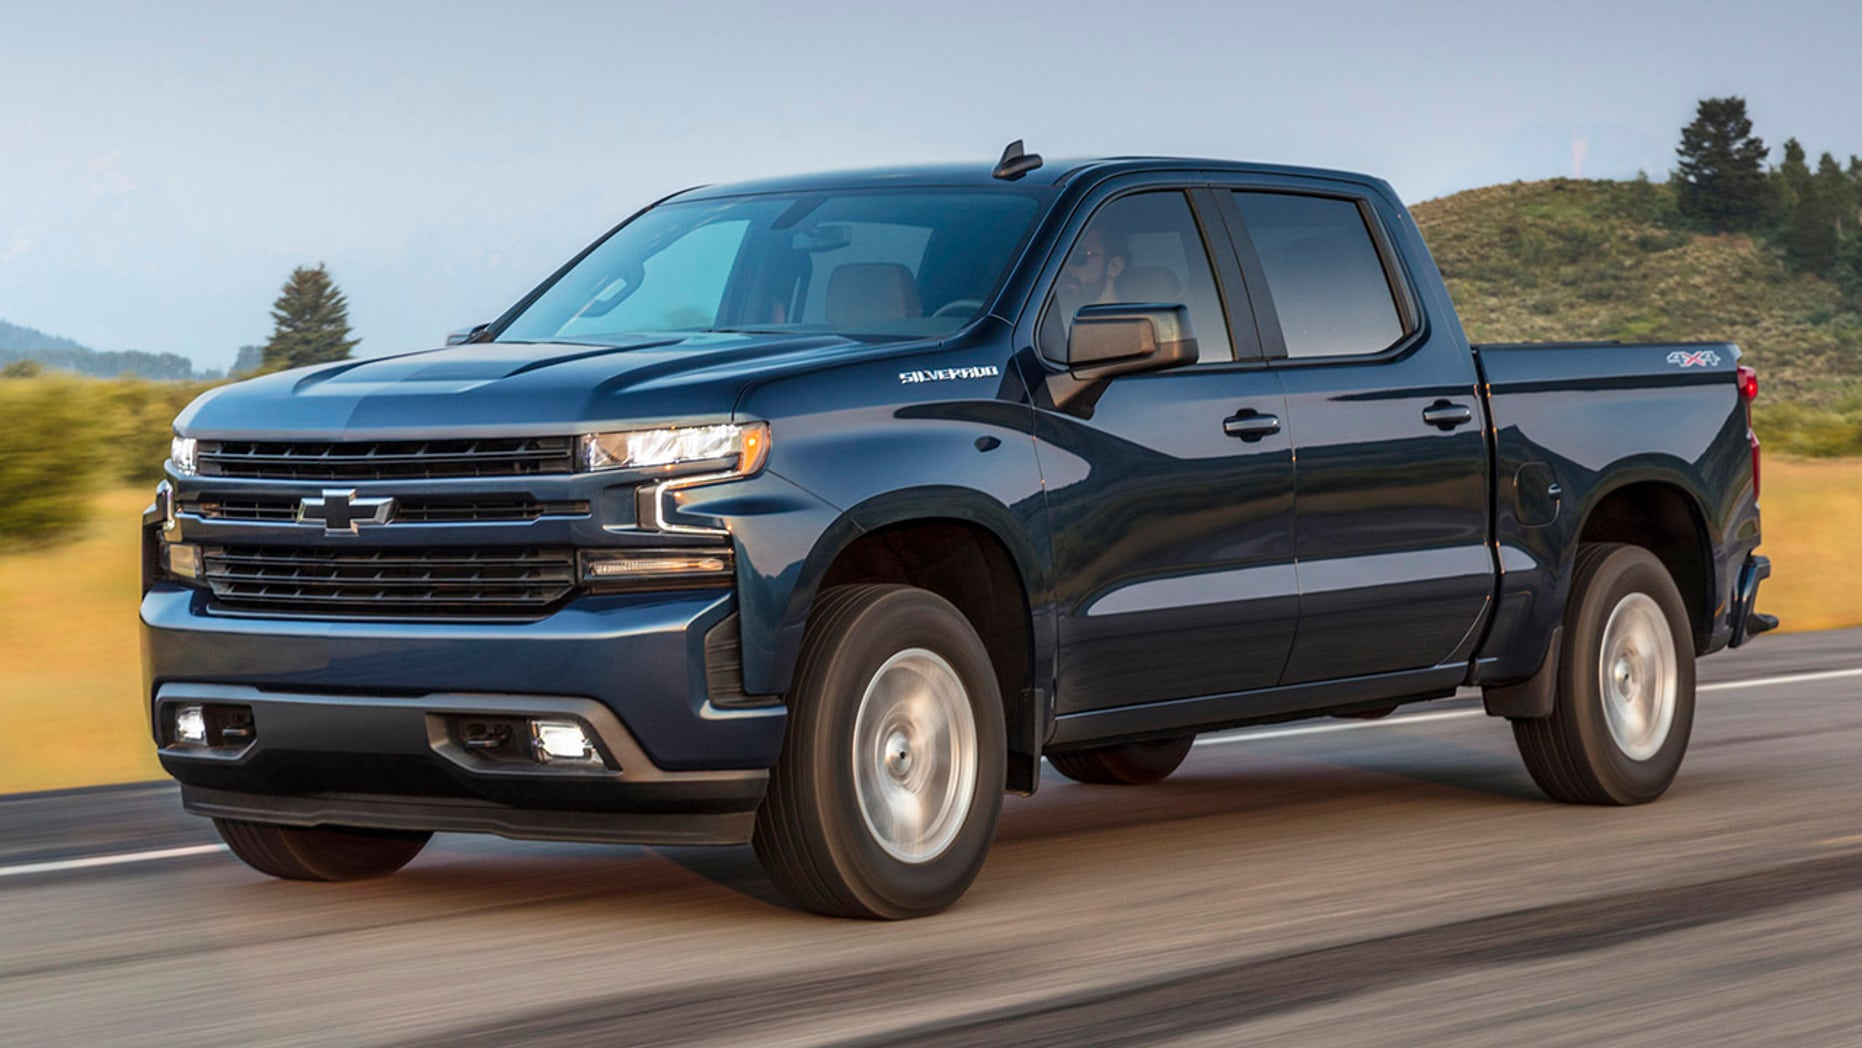 Silverado 1500 Diesel >> Chevrolet Silverado 1500 Diesel Could Be The Most Powerful Fox News